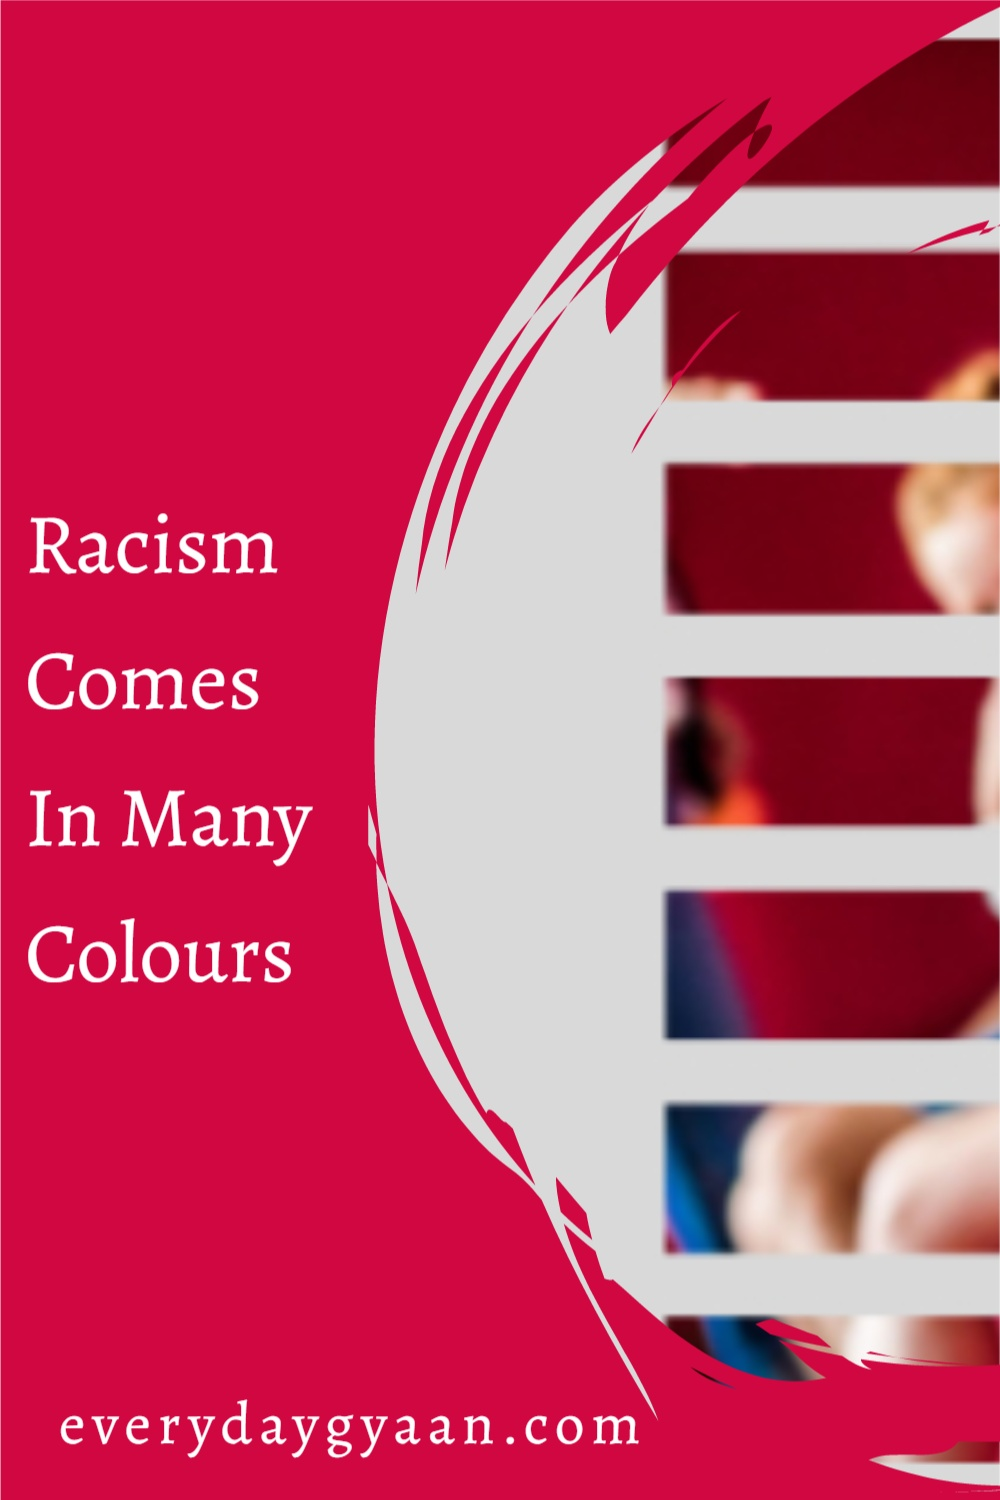 Racism Comes In Many Colours